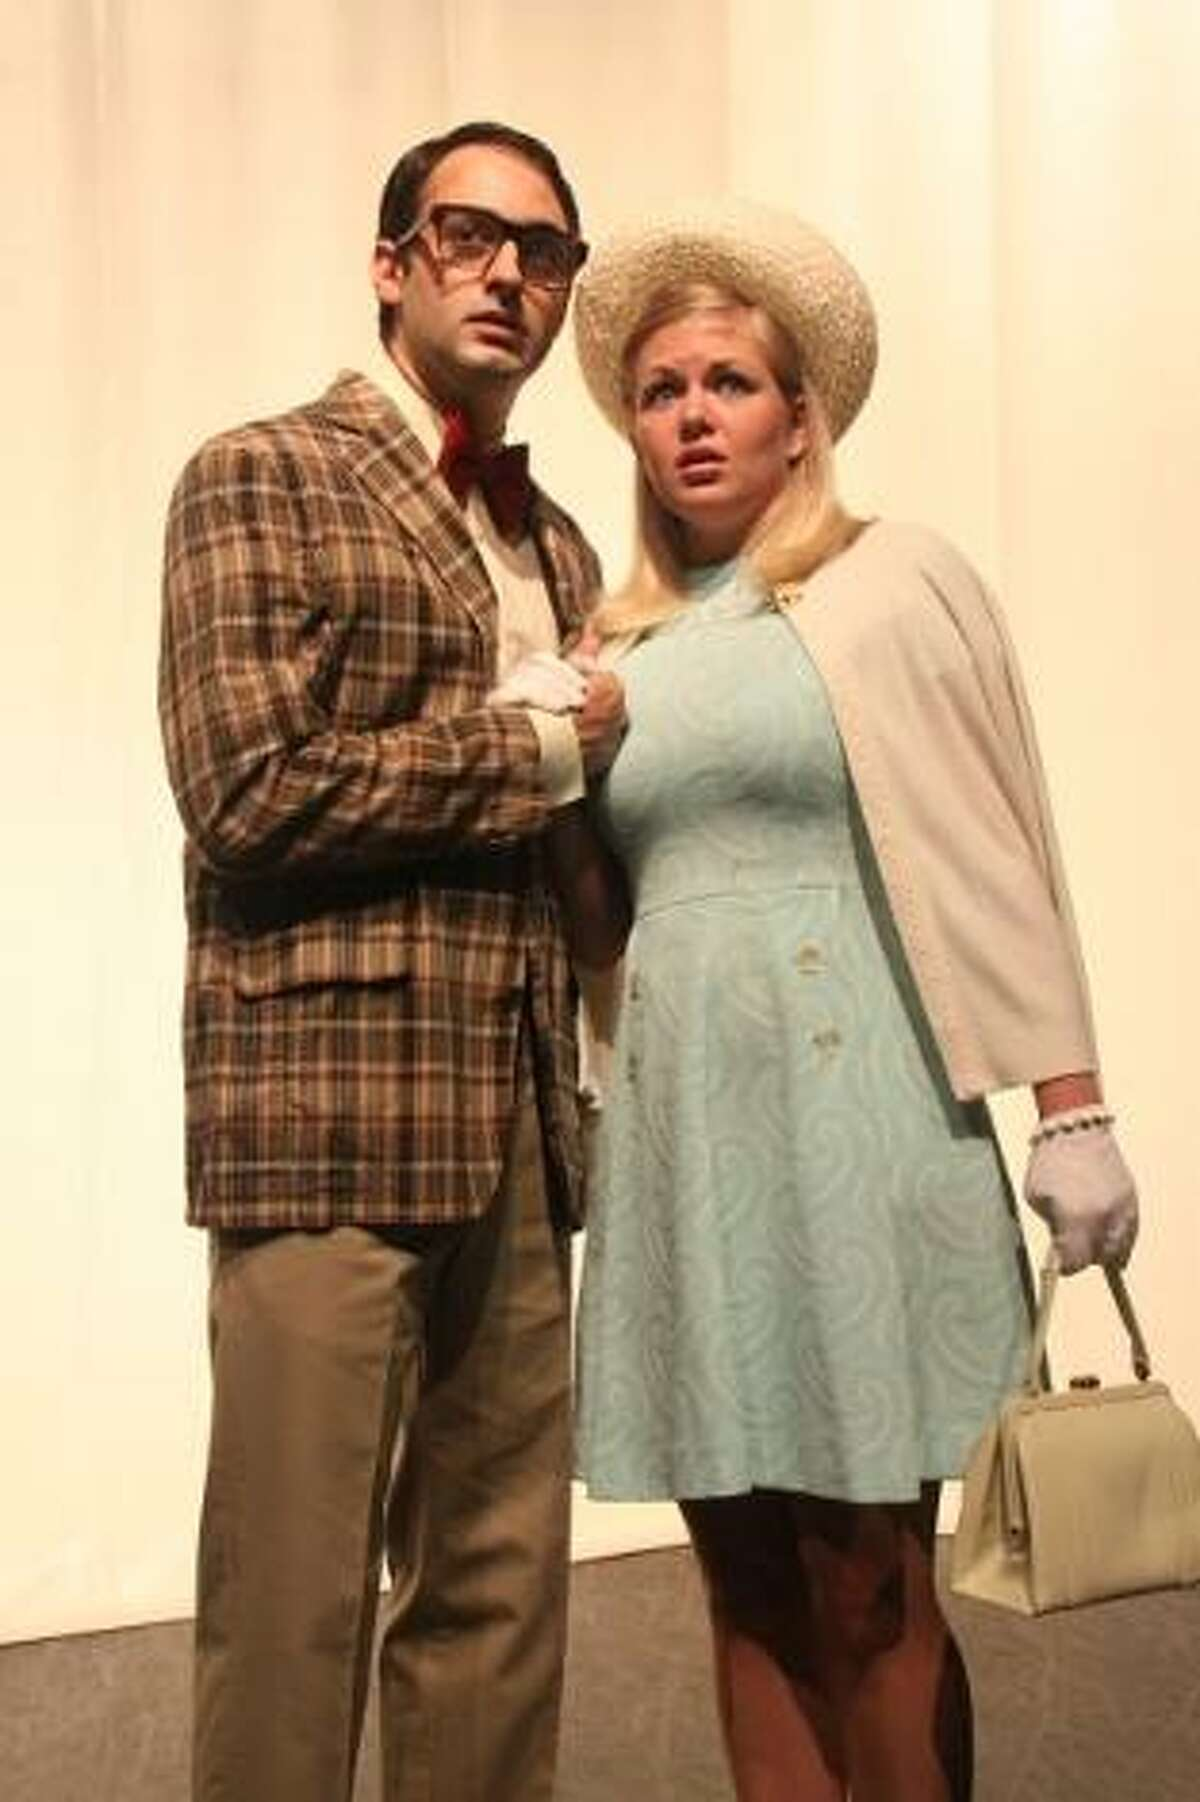 Photo by Sharon Wilcox Brad Majors (played by Dan Porri) and Janet Weiss (Julie Hart), two of the main characters in the Warner Stage Company's upcoming performances of